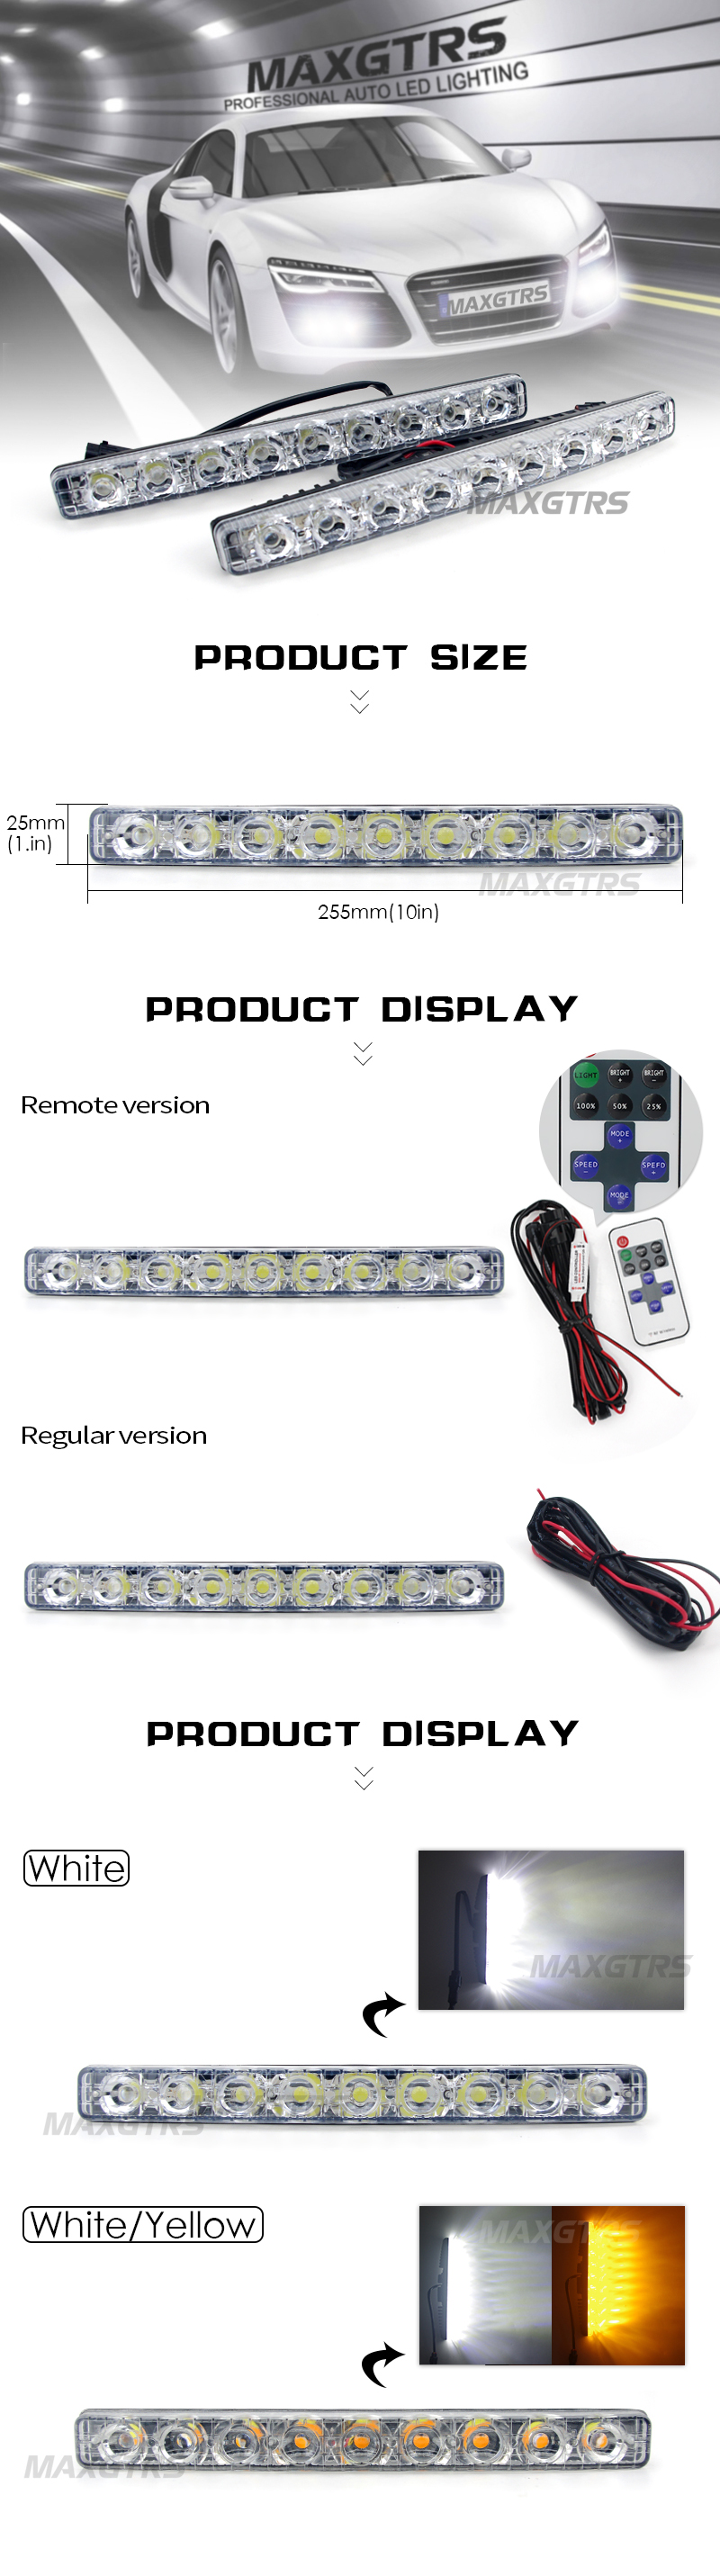 2x High Power Folw 9 Led 18w Car Light Drl Daytime Running Lights Wiring Instructions Source Waterproof Styling White With Amber Turn Signal